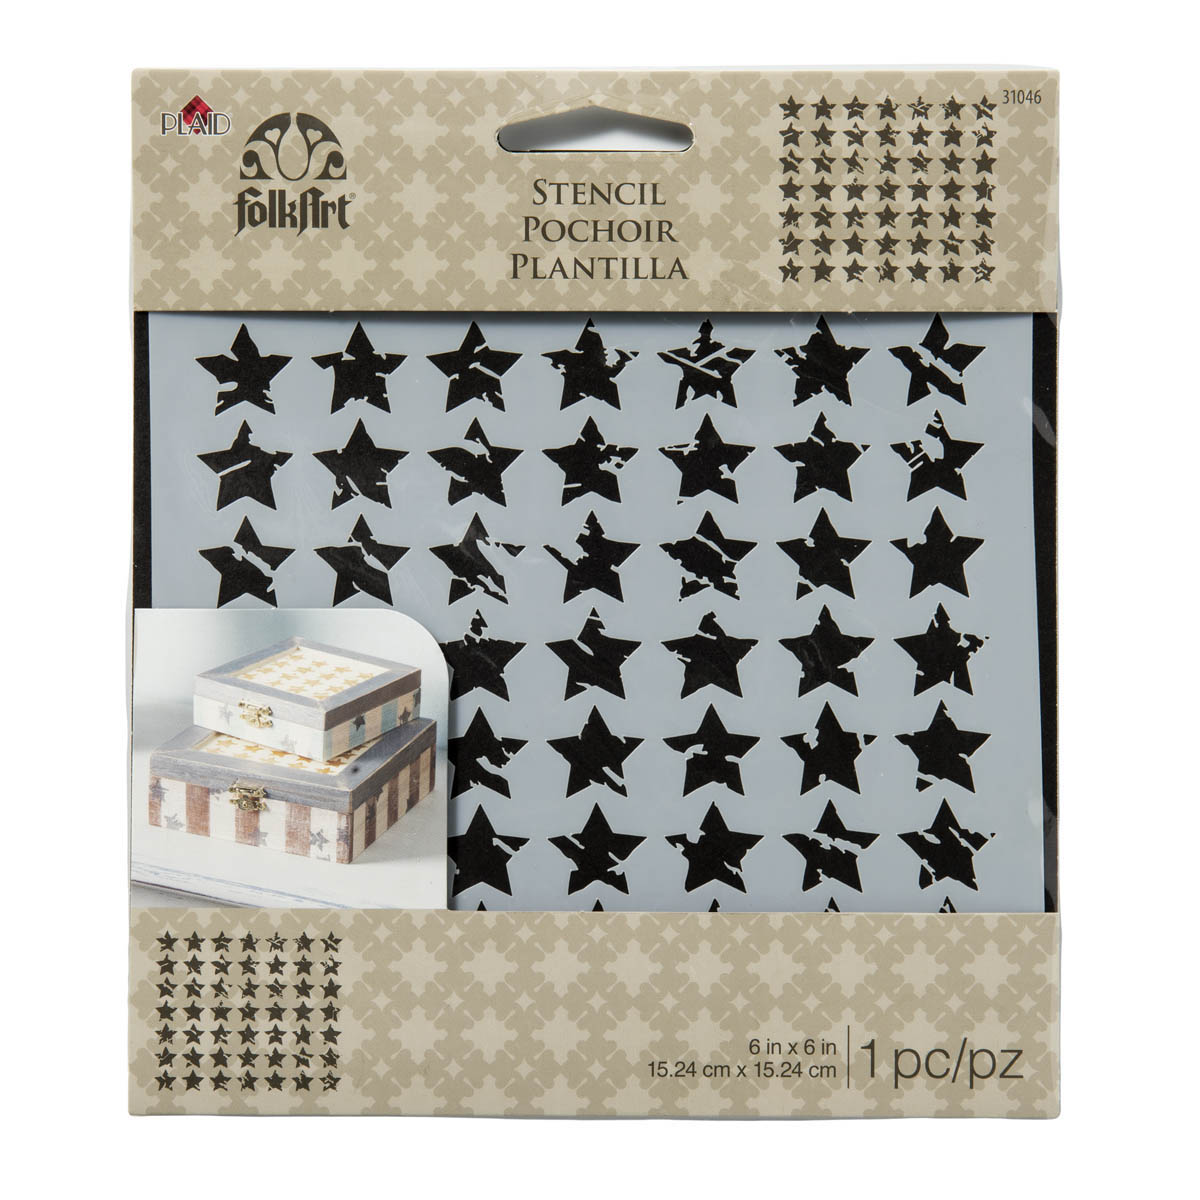 FolkArt ® Painting Stencils - Small - Distressed Stars - MS31046